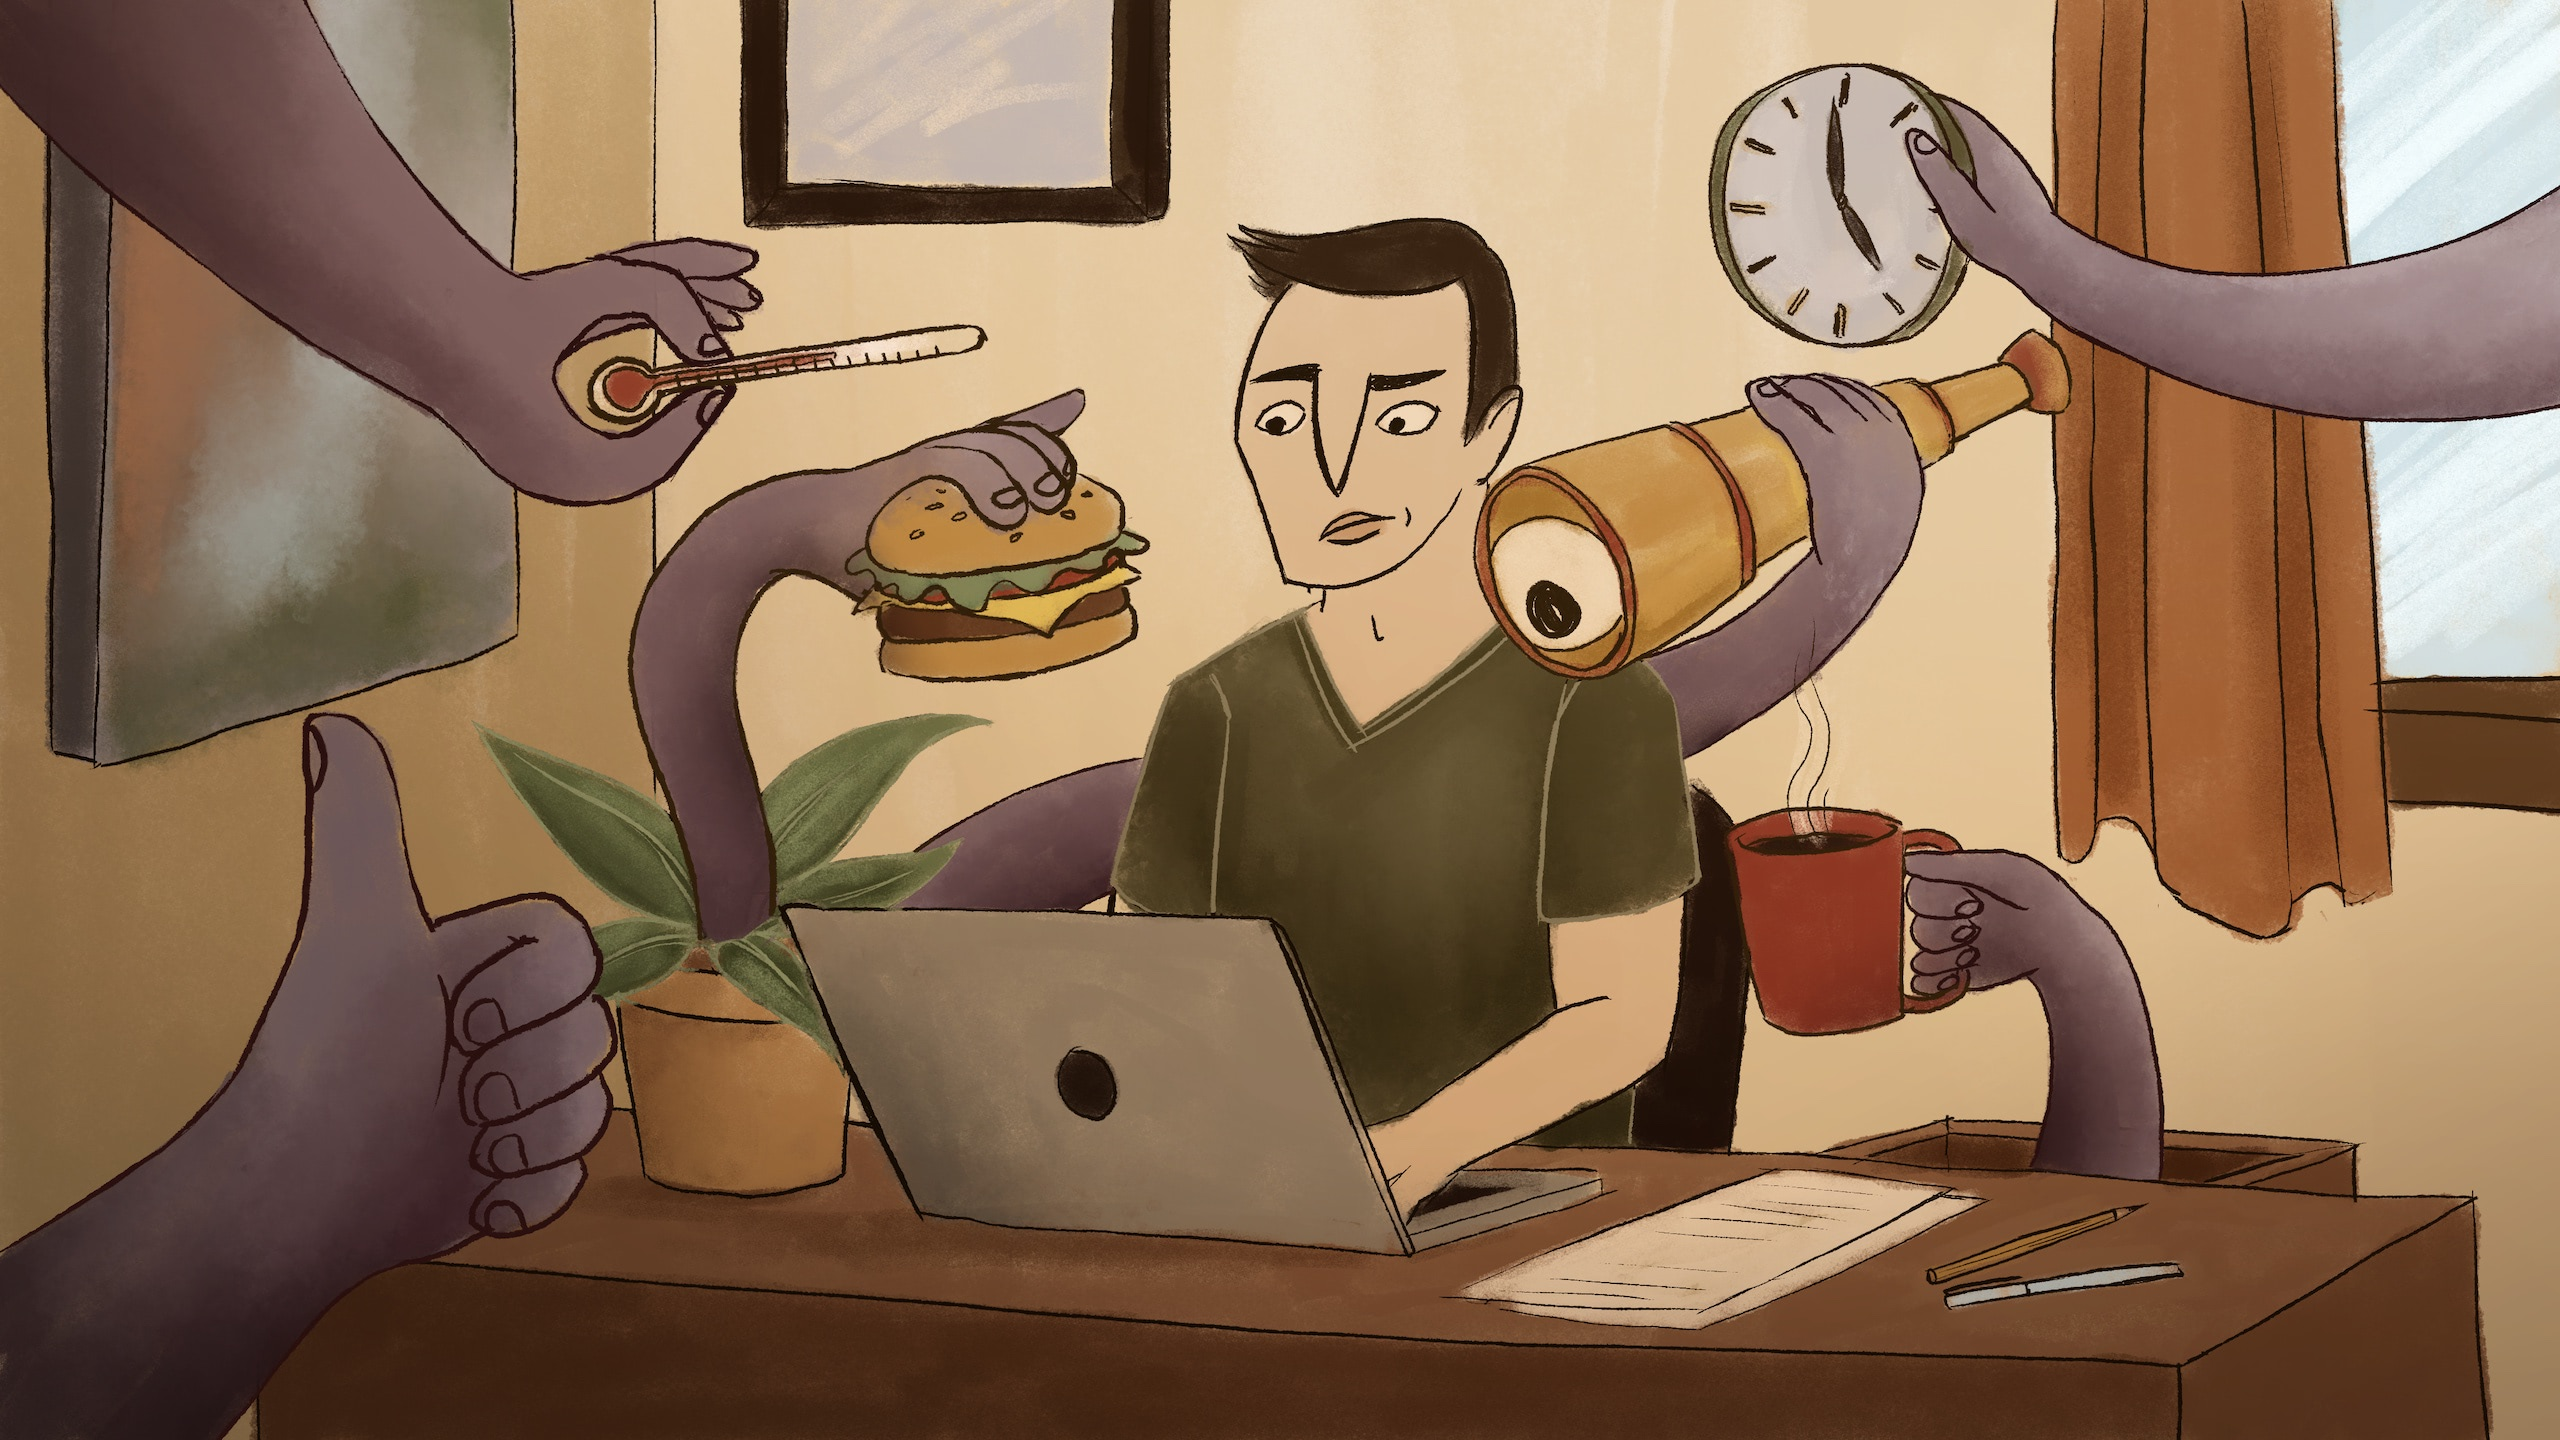 Illustration of a person sitting at a desk using a laptop. Hands are reaching from around the room holding items including a thermometer, burger, clock, spyglass.